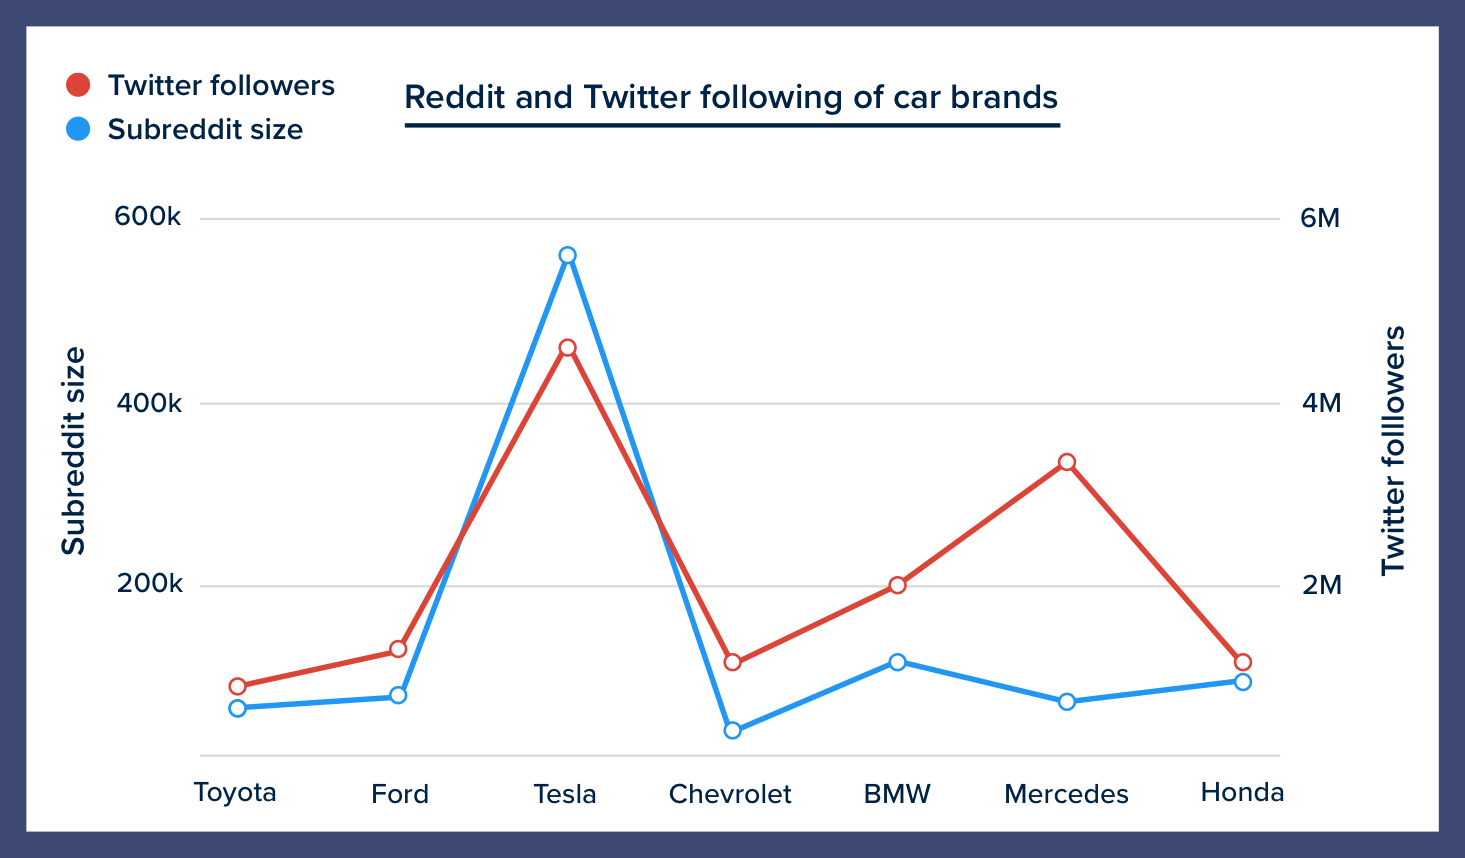 Graph of Tesla's Subreddit size and Twitter following